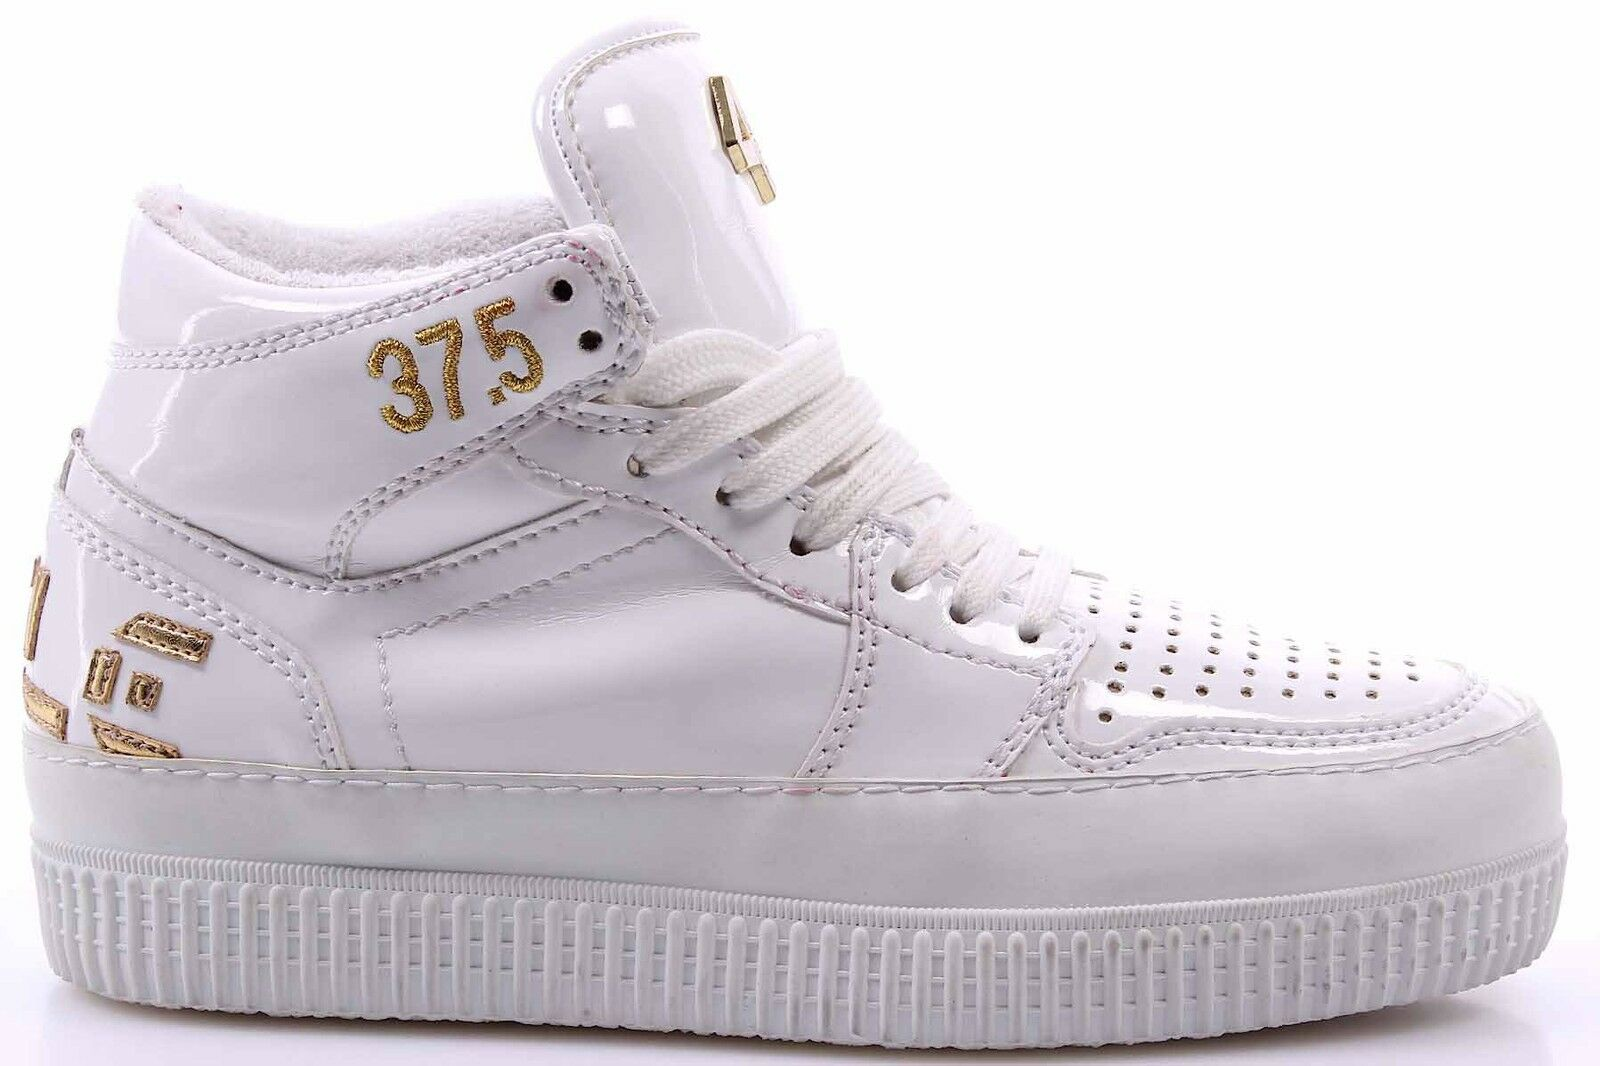 Women's High Top Sneakers shoes CYCLE 371246 Vern white Lux gold Leather White